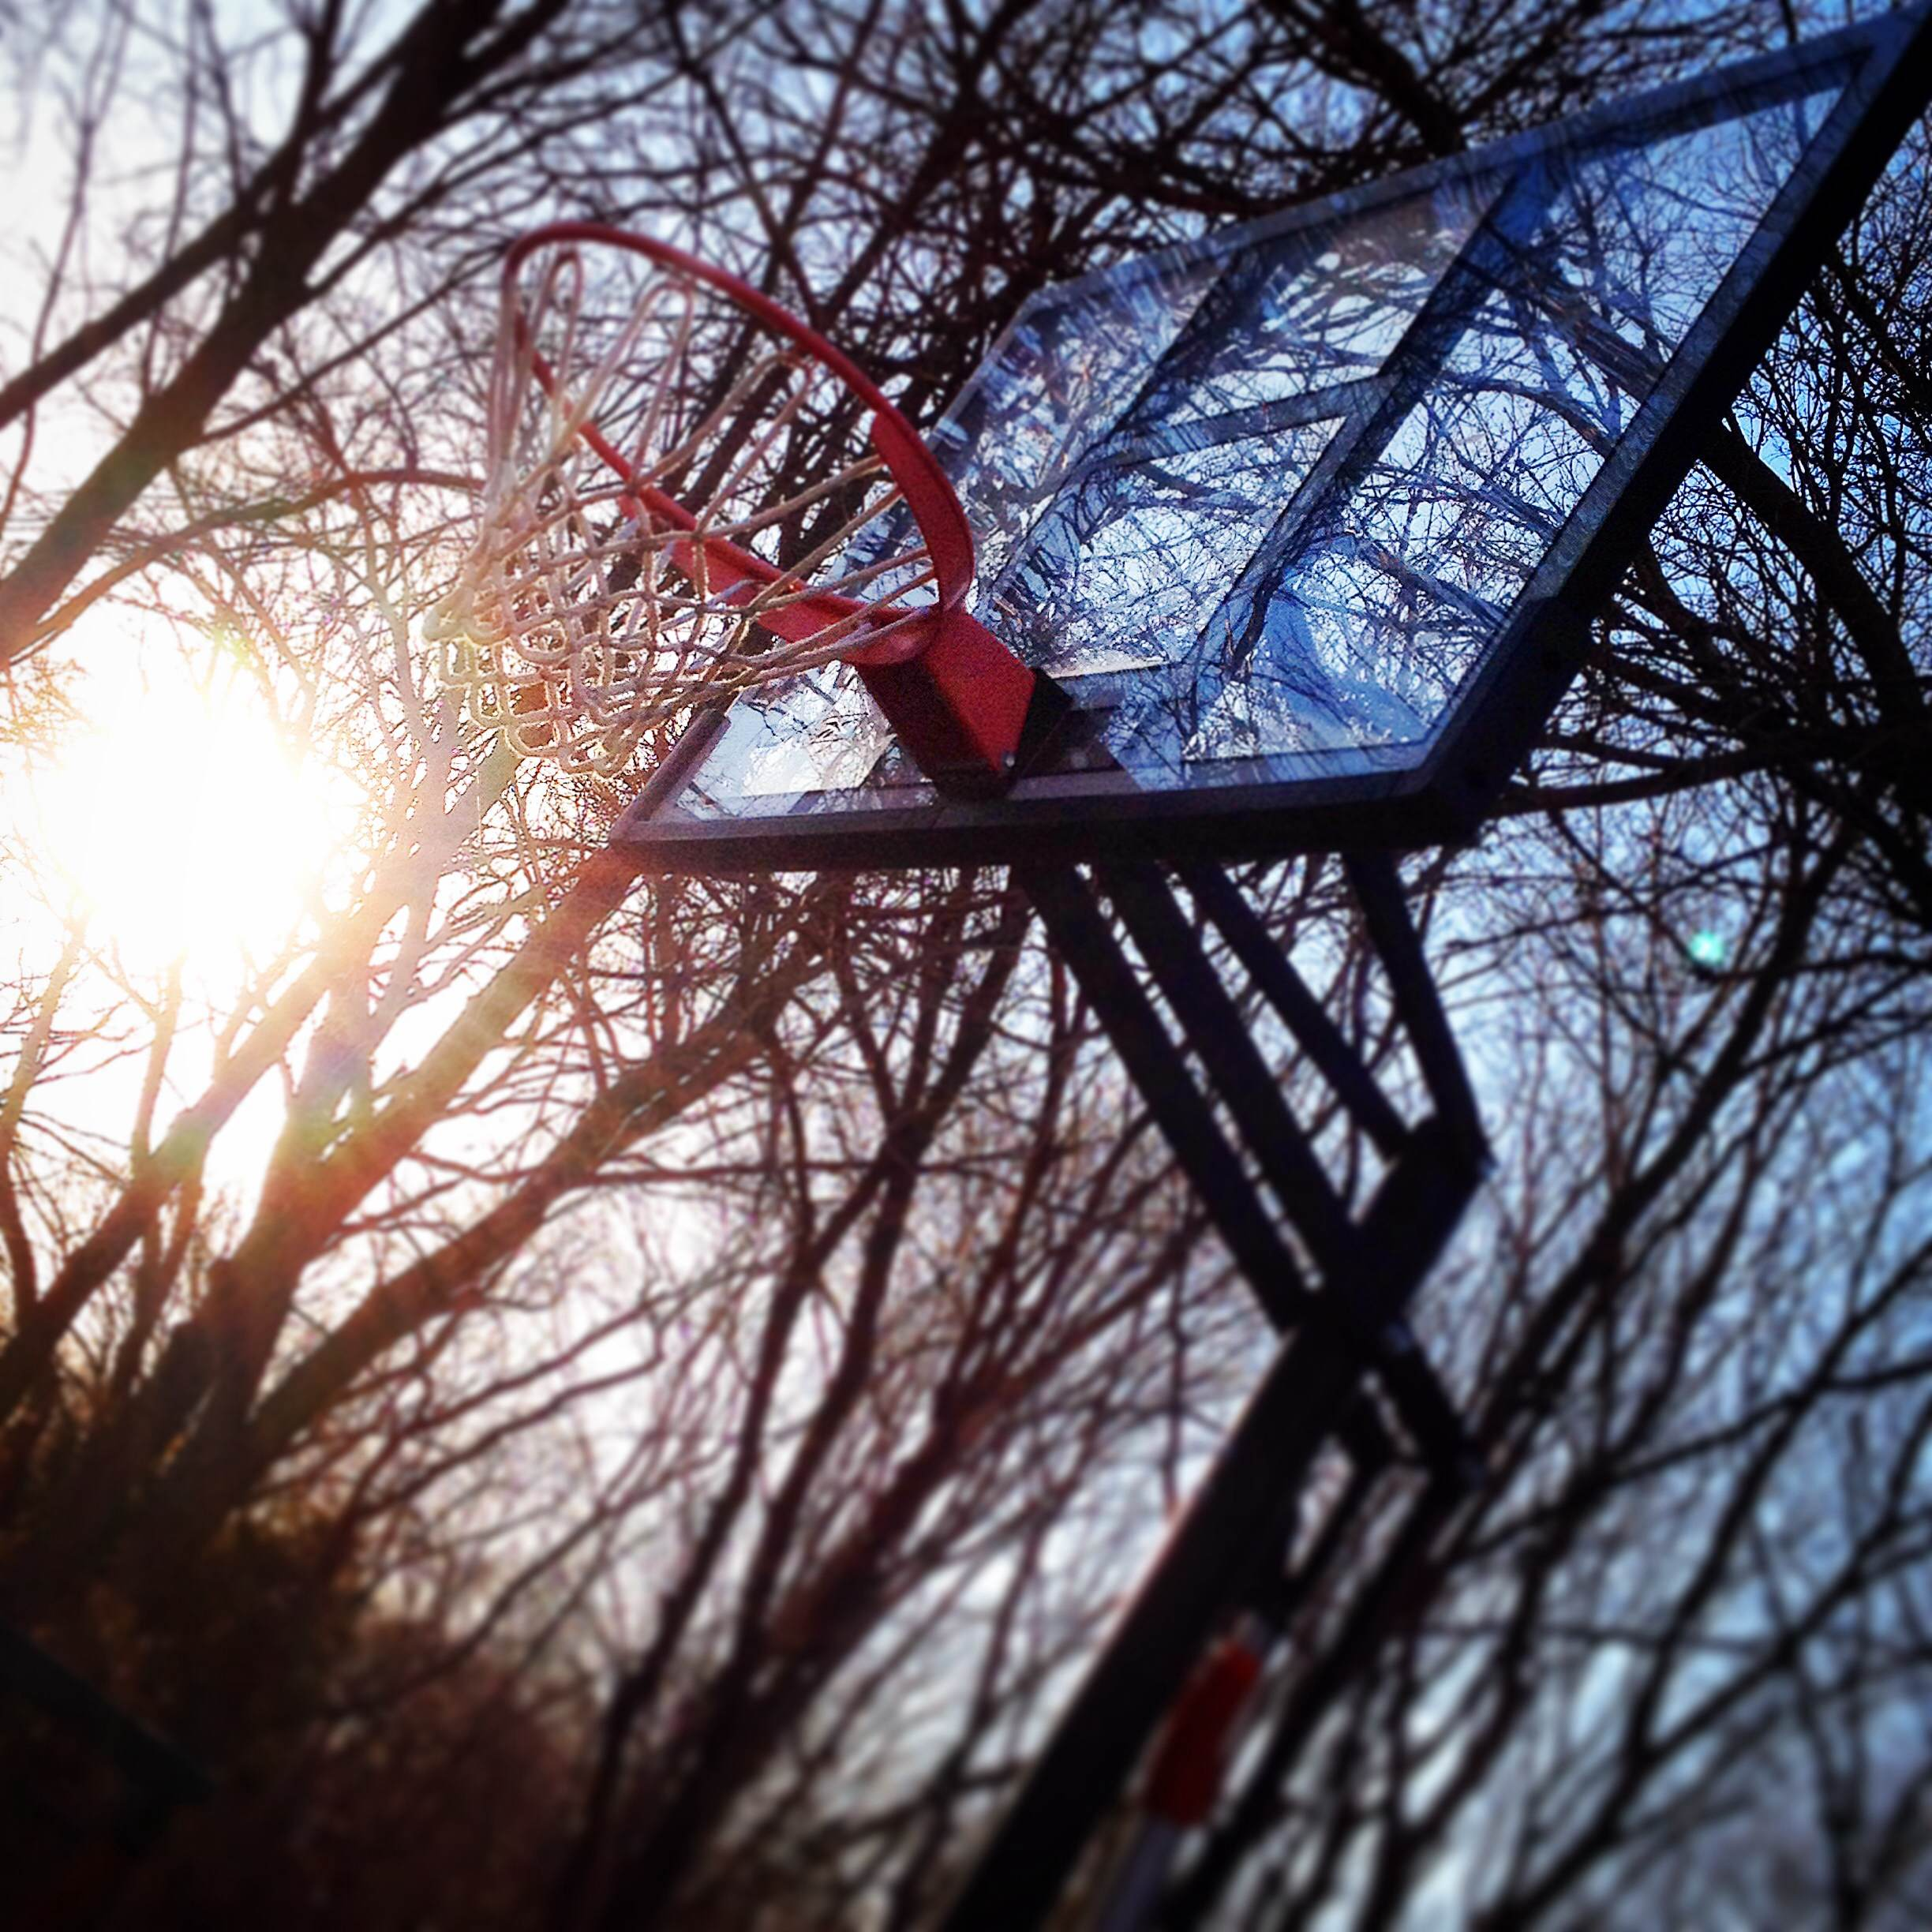 Evening Hoops and Dreams by Paige Schroeder